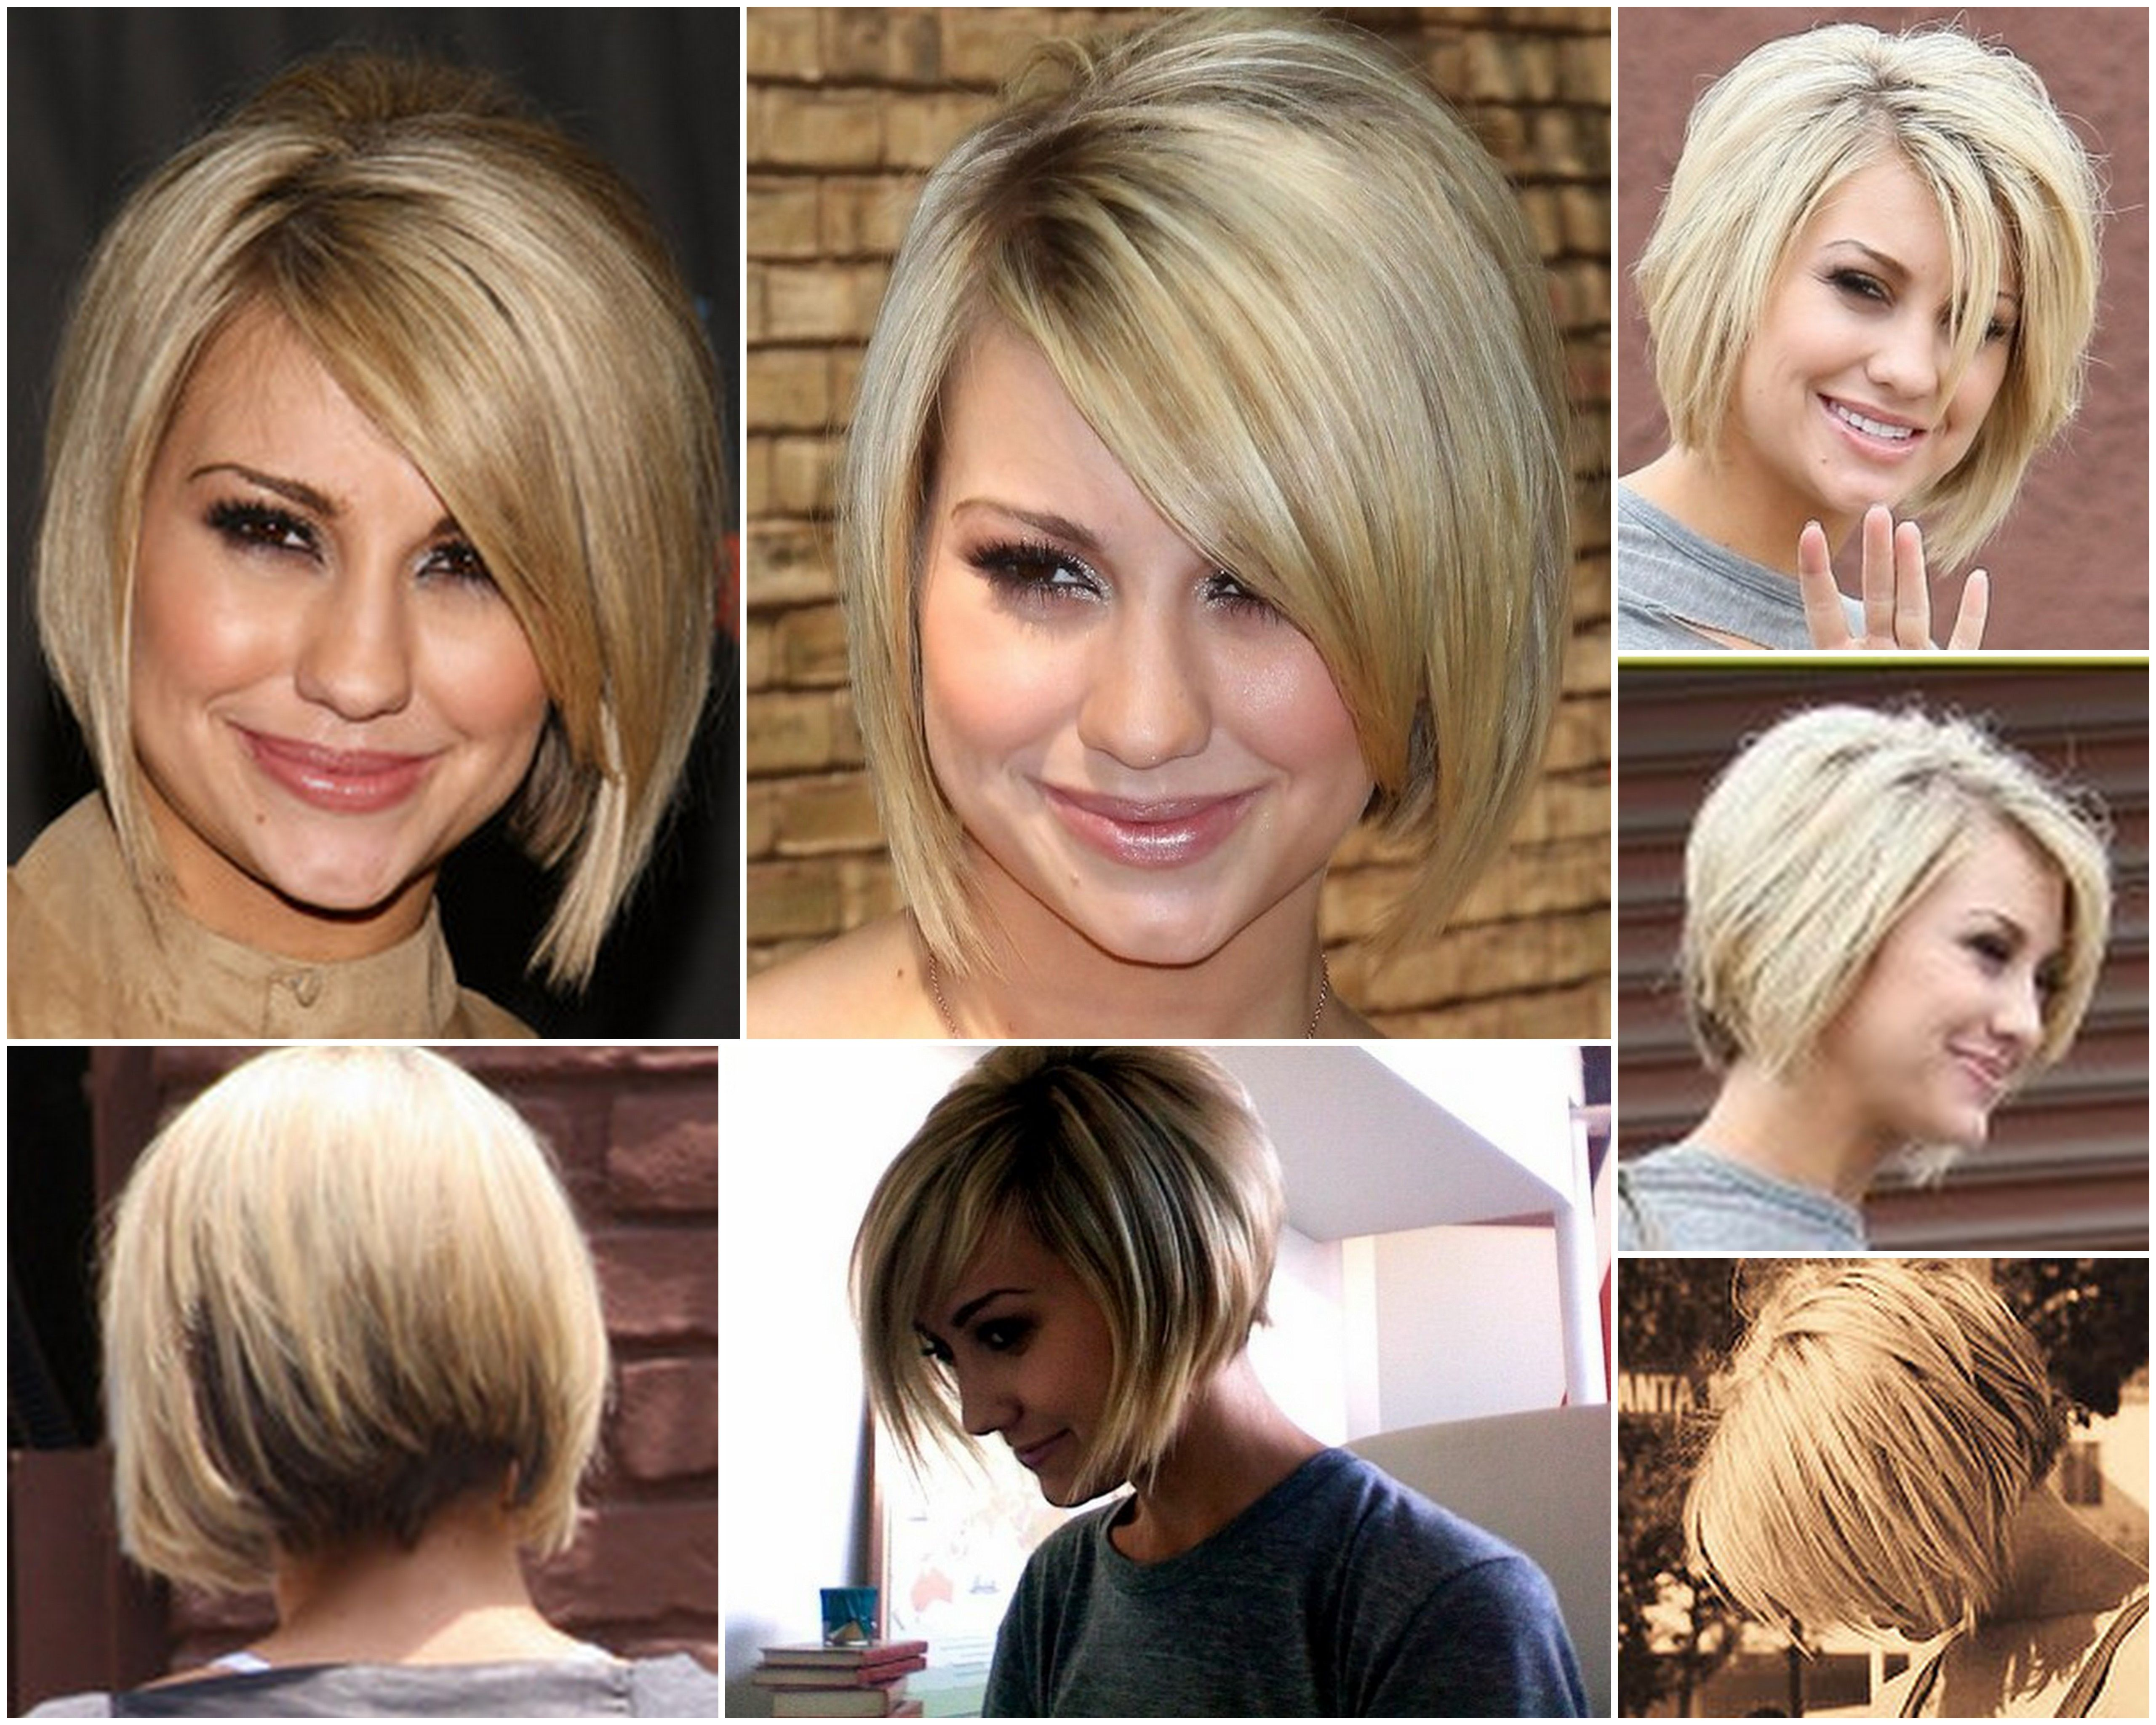 Bobs Hairstyle 94 Best Short Bob Images On Pinterest  Short Bobs Bob Hair Cuts